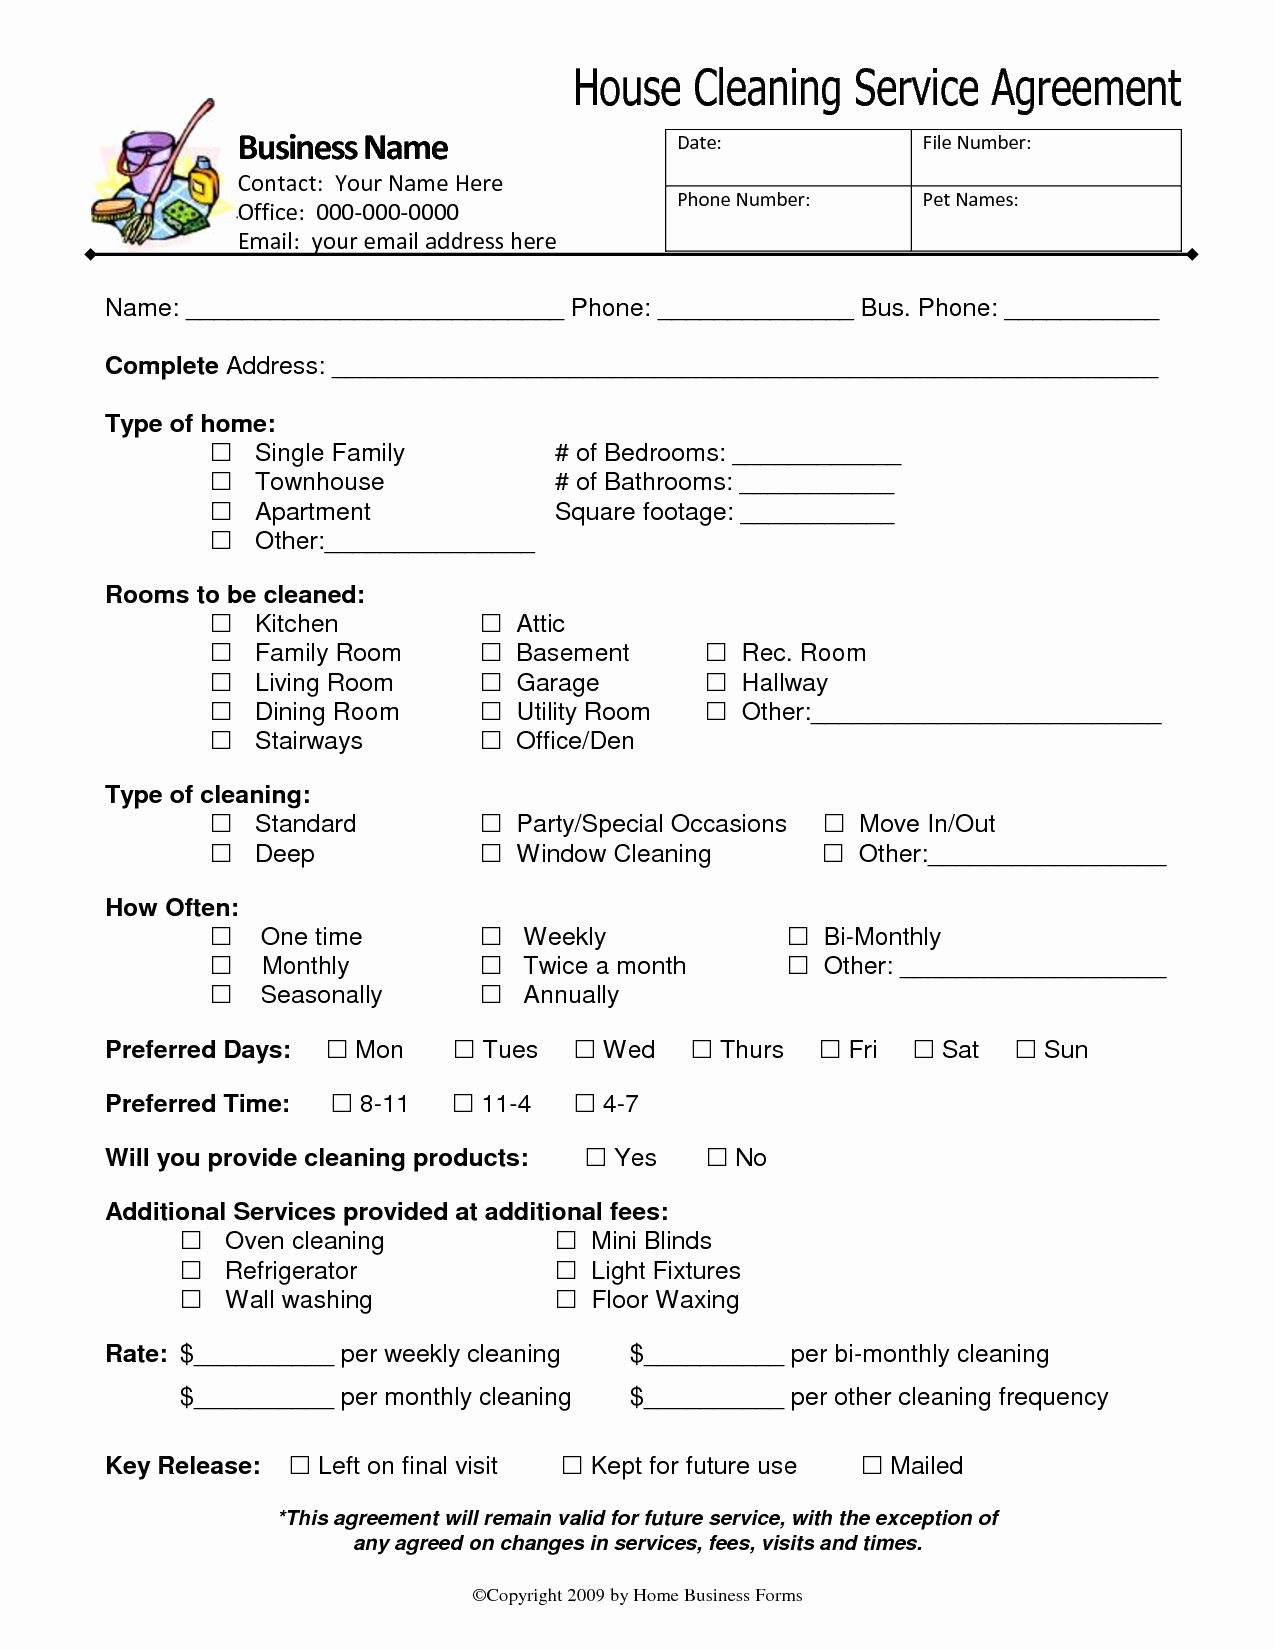 Cleaning Services Price List Template Elegant Know About House Cleaning Services Agreement – Home Services